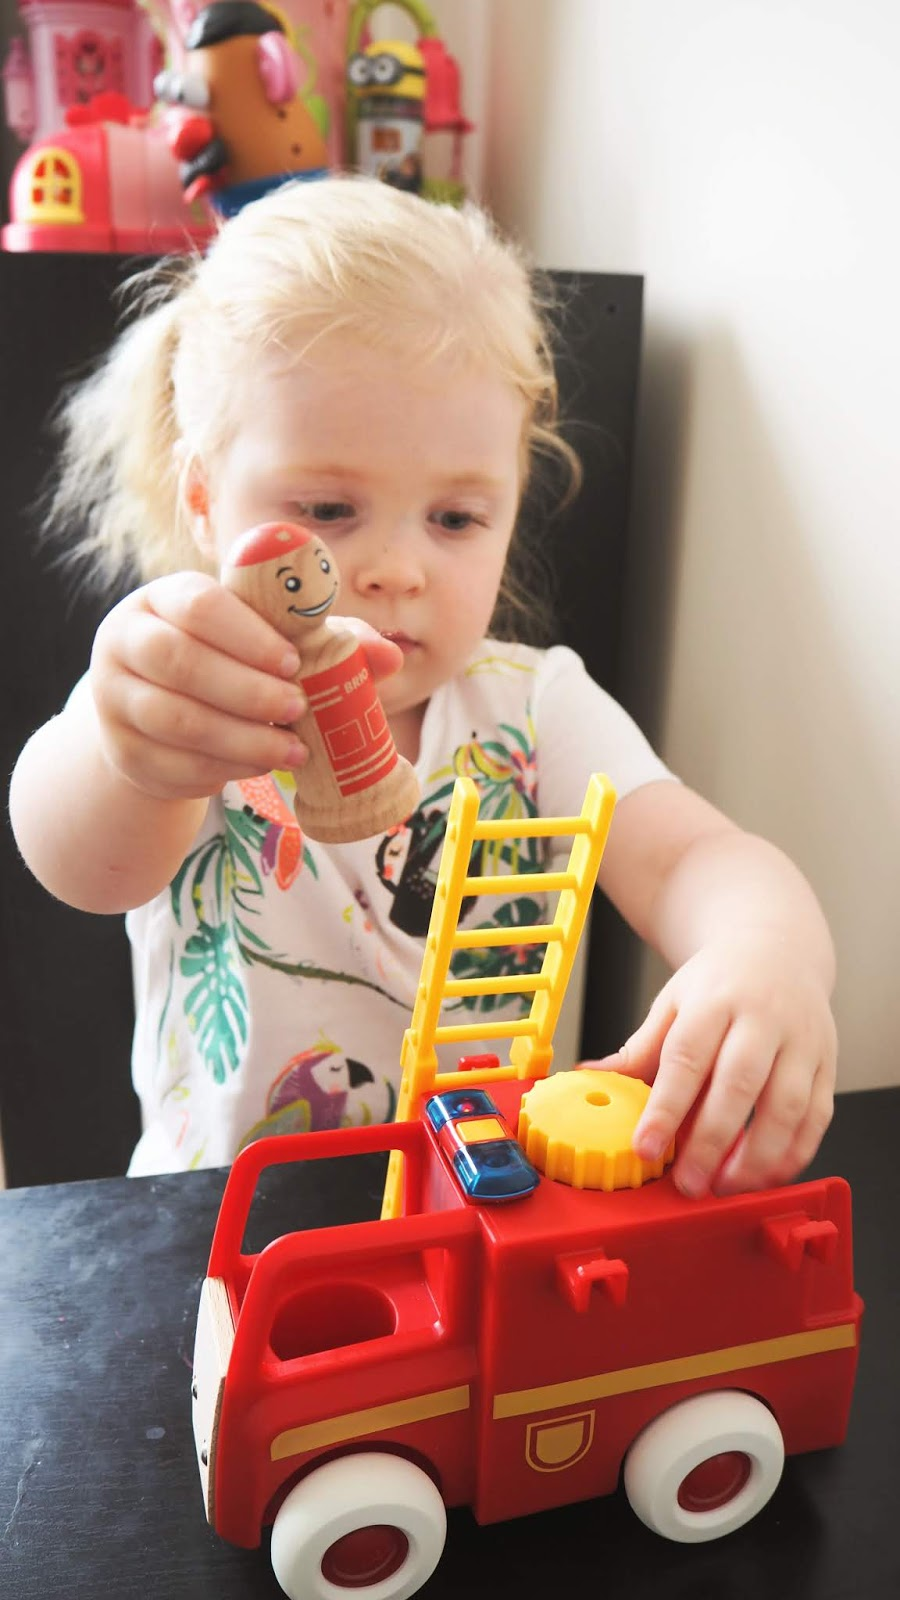 Elise is getting one of the little wooden peg people to climb up a ladder which she has rested against the fire truck